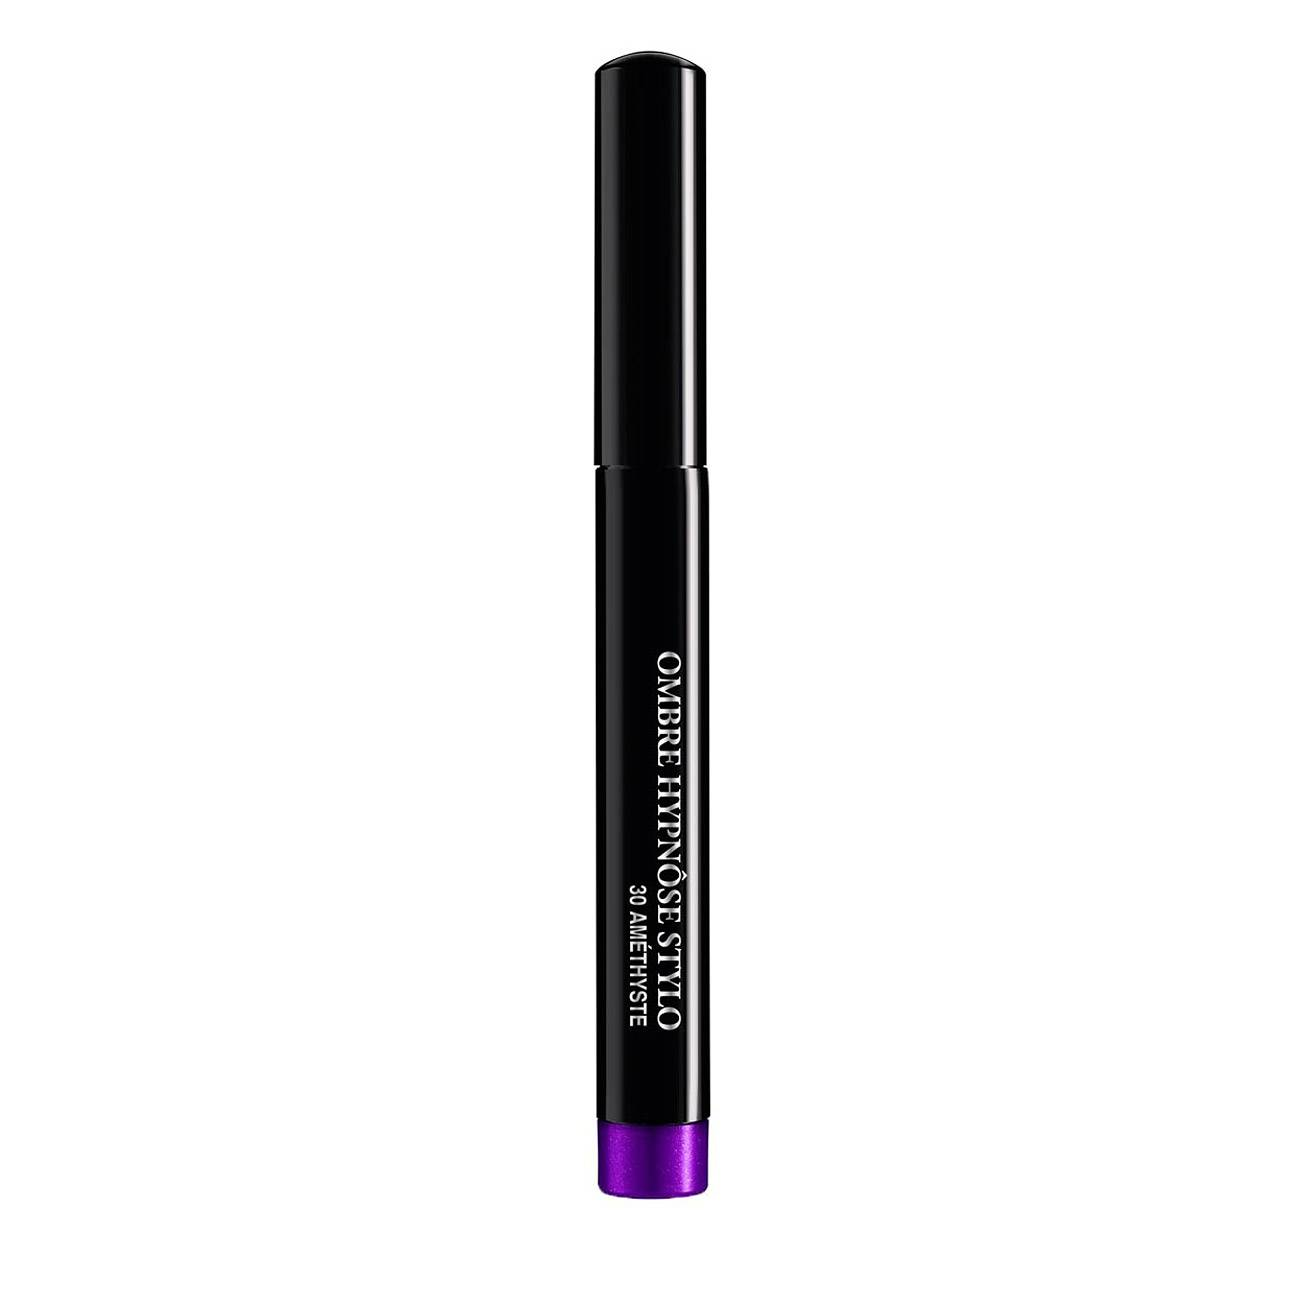 OMBRE HYPNOSE STYLO 1.4 G 030